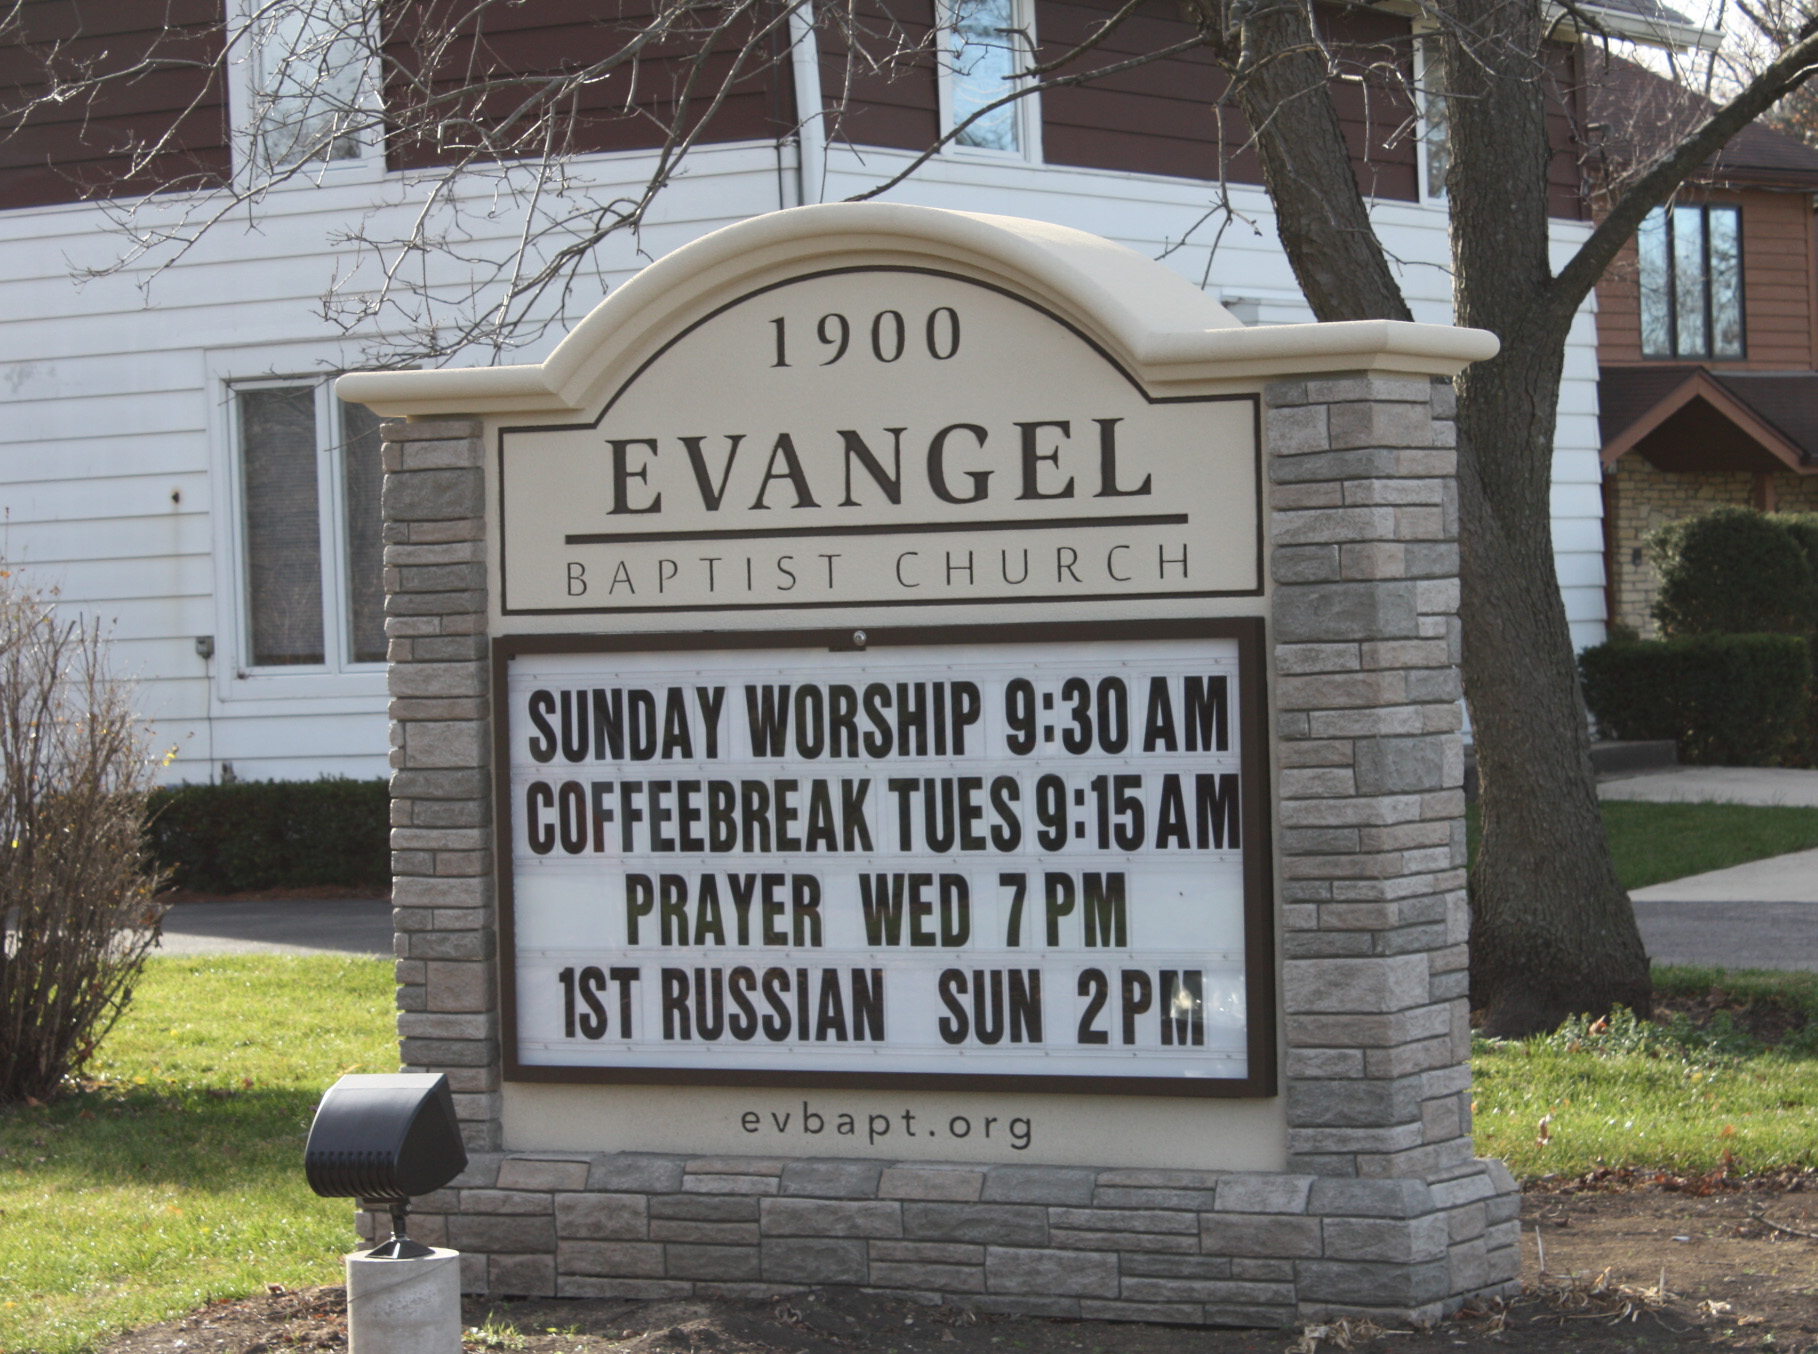 See what time worship starts for this church. QUESTION: Do they really wait 48 hours until their first coffee break?